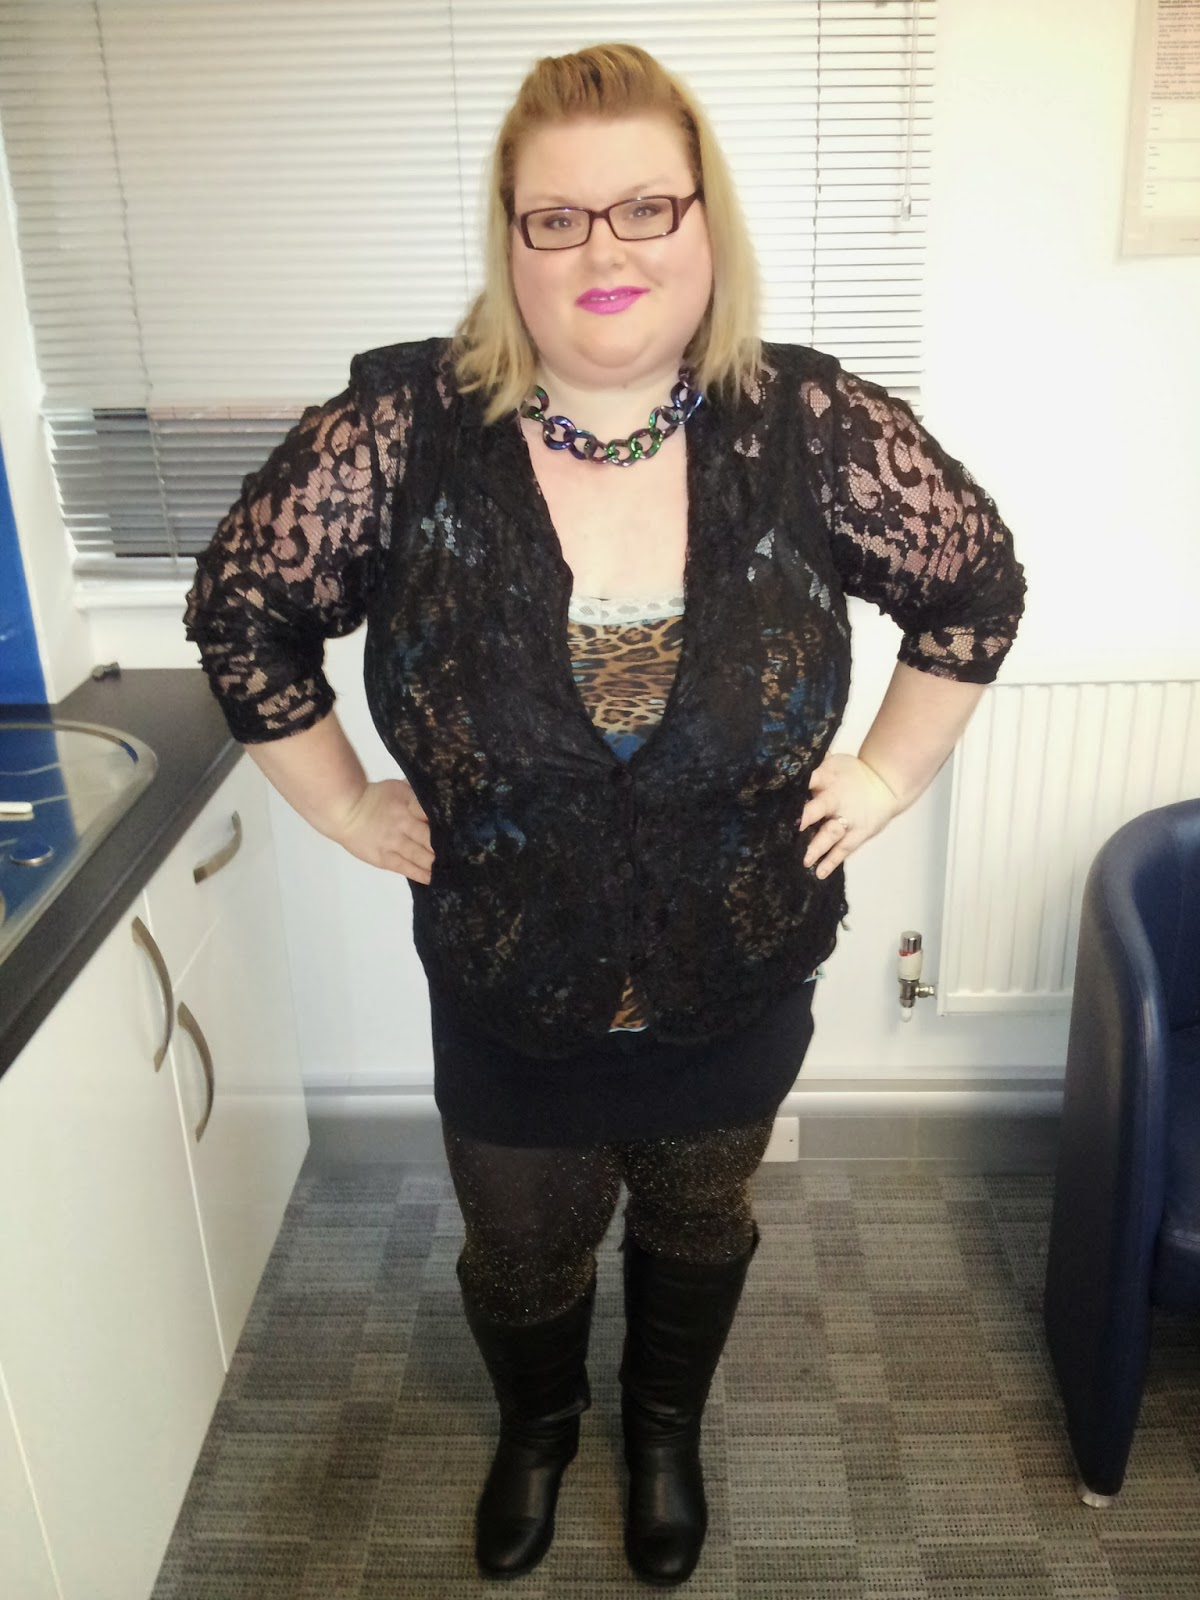 03a33d51baf2 Lace Cardi from Zizzi, cami very old can't remember from where, skirt from  New Look, leggings from Primark, boots from Evans and necklace from Primark.